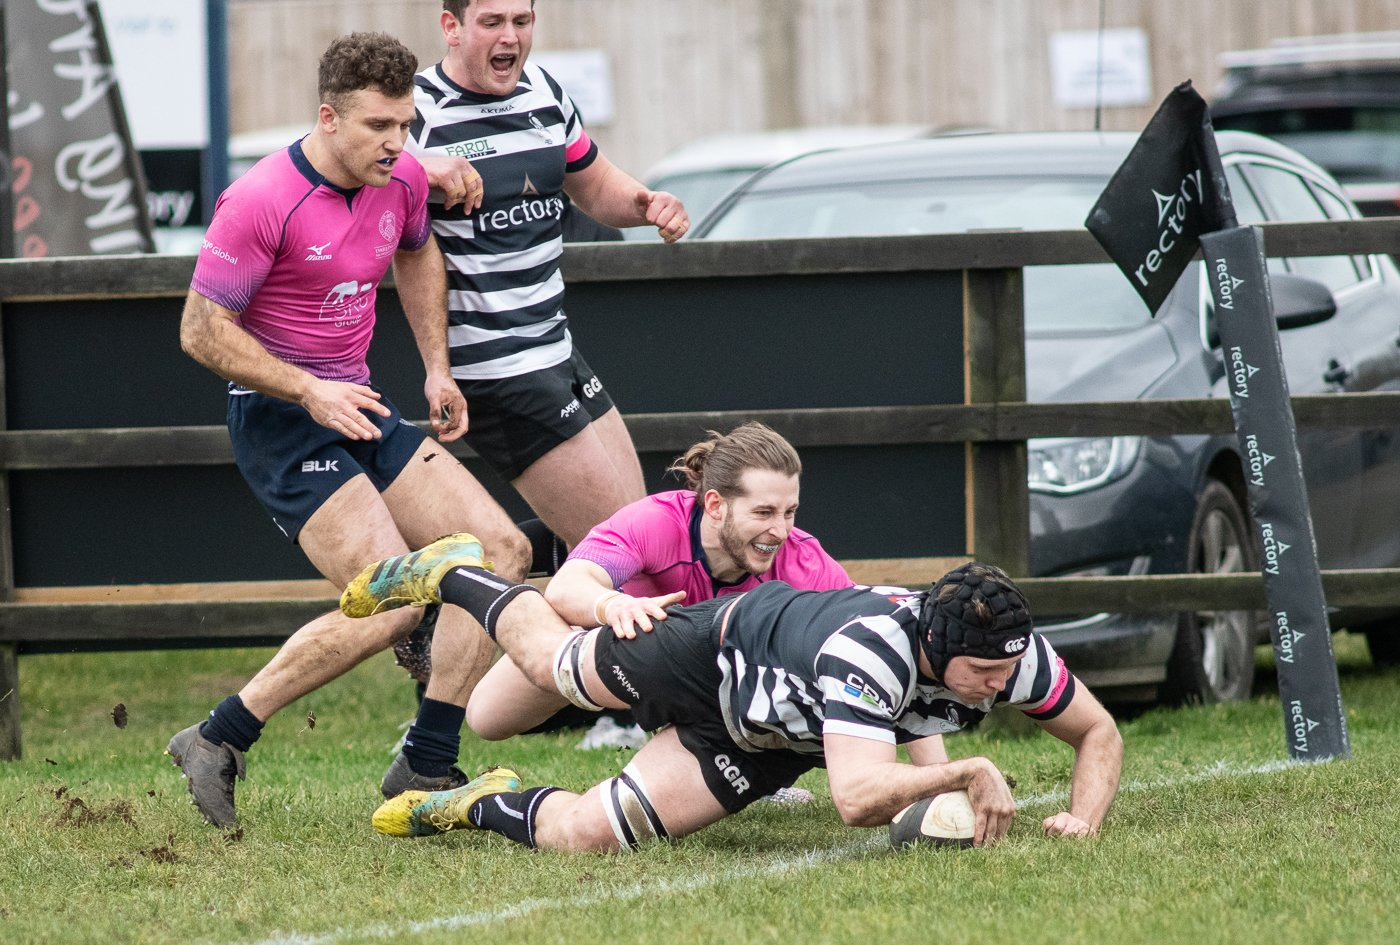 Ben Manning crosses for Chinnor's second try against Darlington Mowden Park Picture: David Howlett